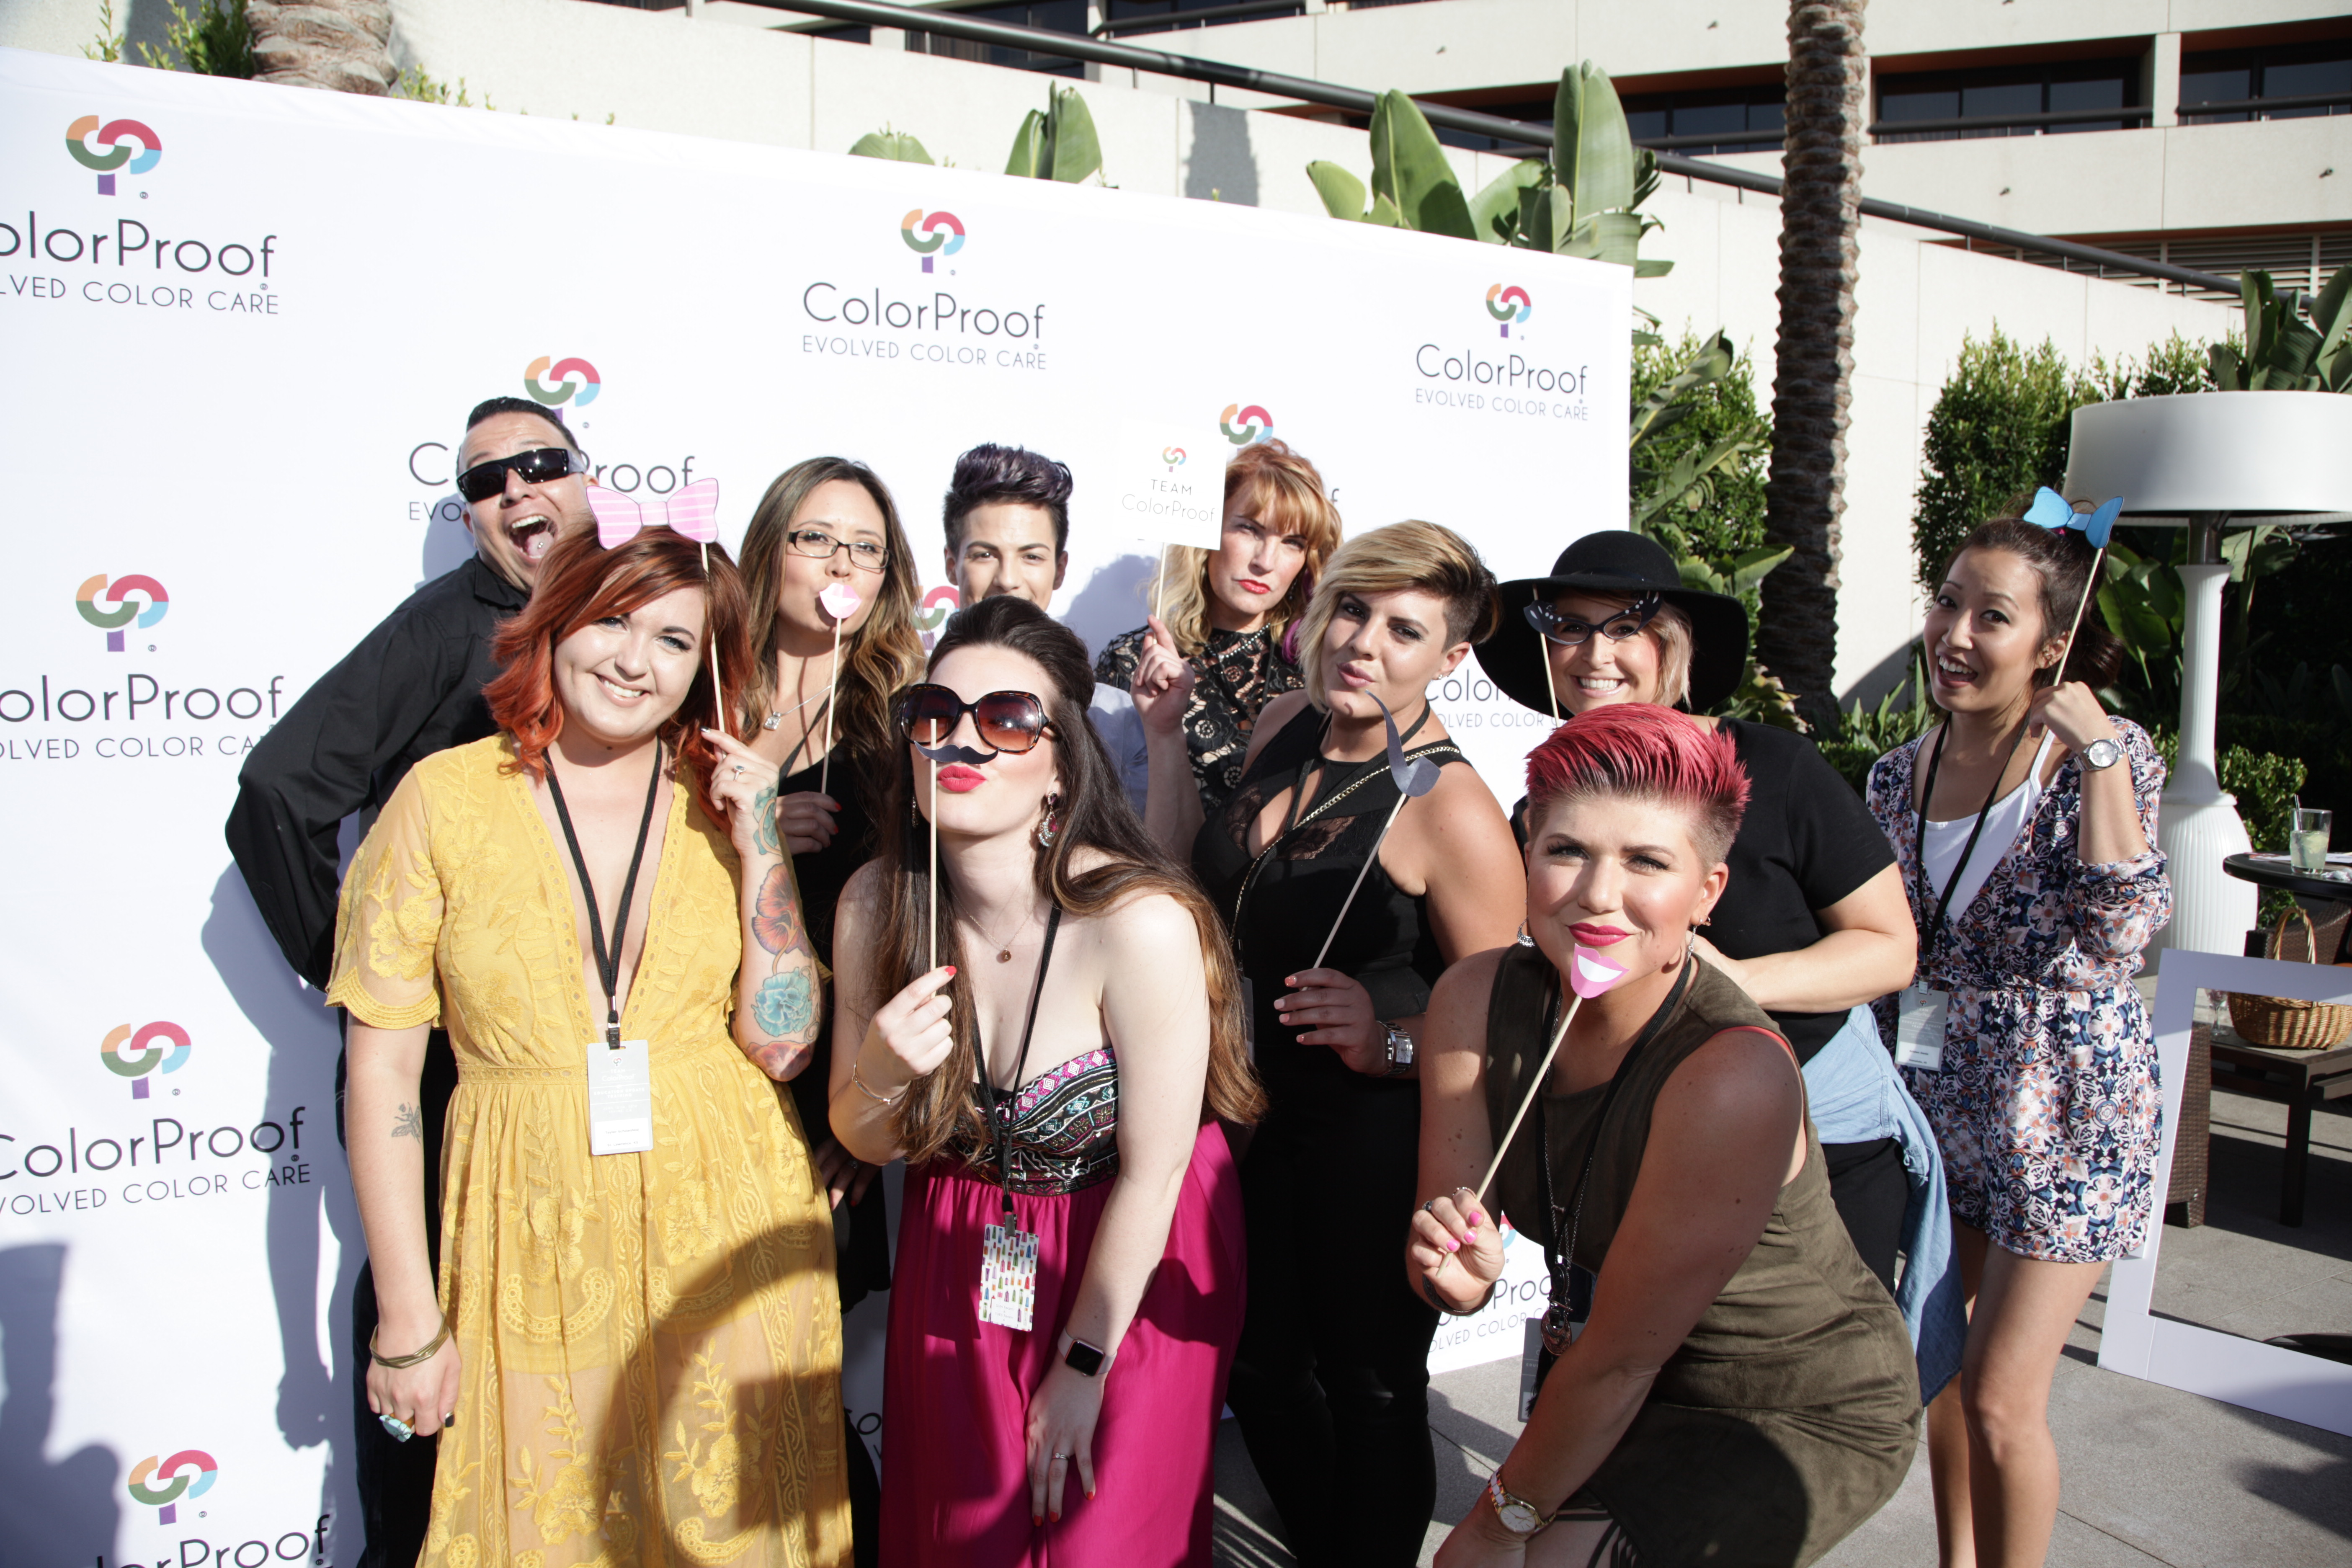 The newest members of the ColorProof Artistic Team in the ColorProof photo booth